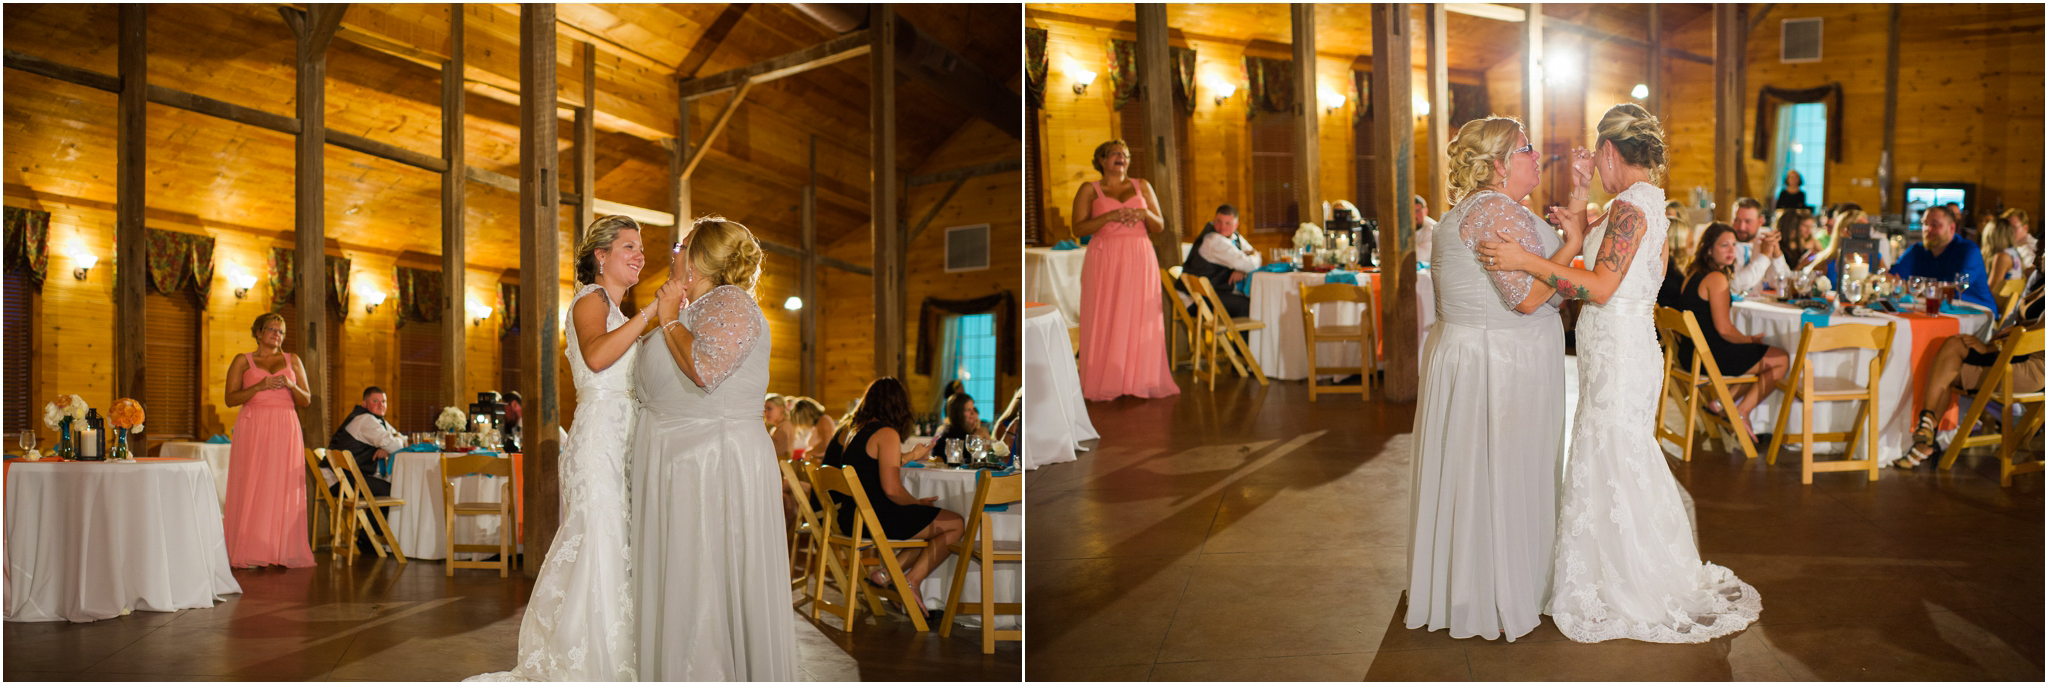 bethany-grace-photography-linganore-winecellars-same-sex-lgbtq-pink-blue-winery-outdoor-wedding-25.JPG